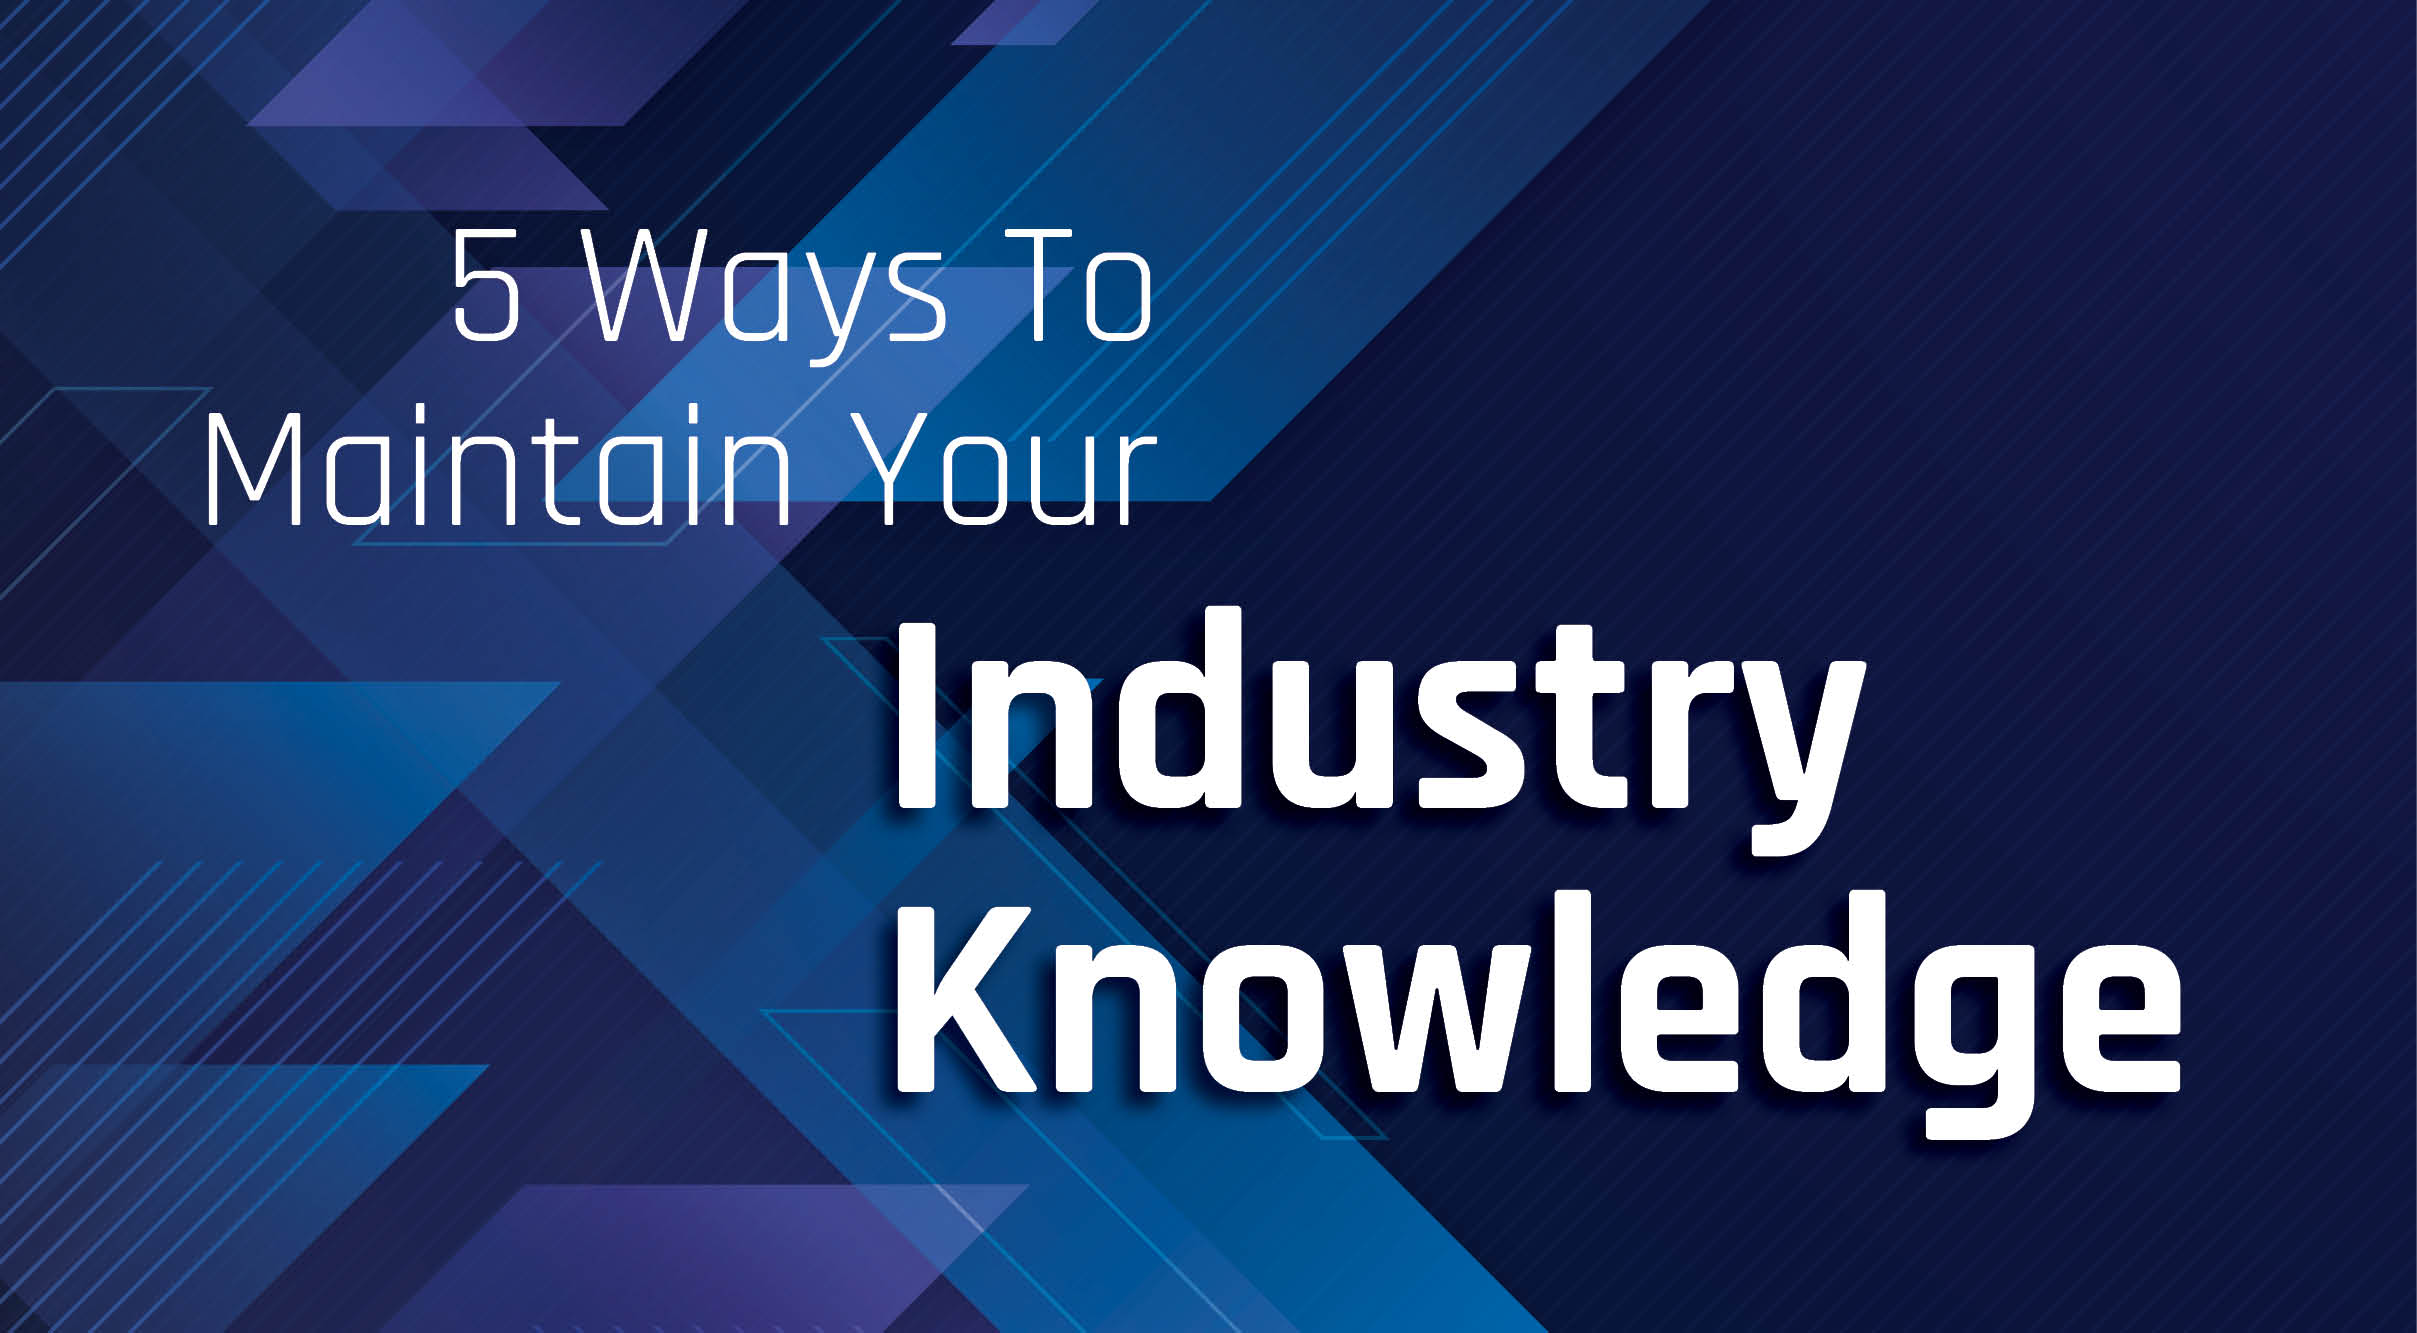 5 Ways To Maintain Your Industry Knowledge